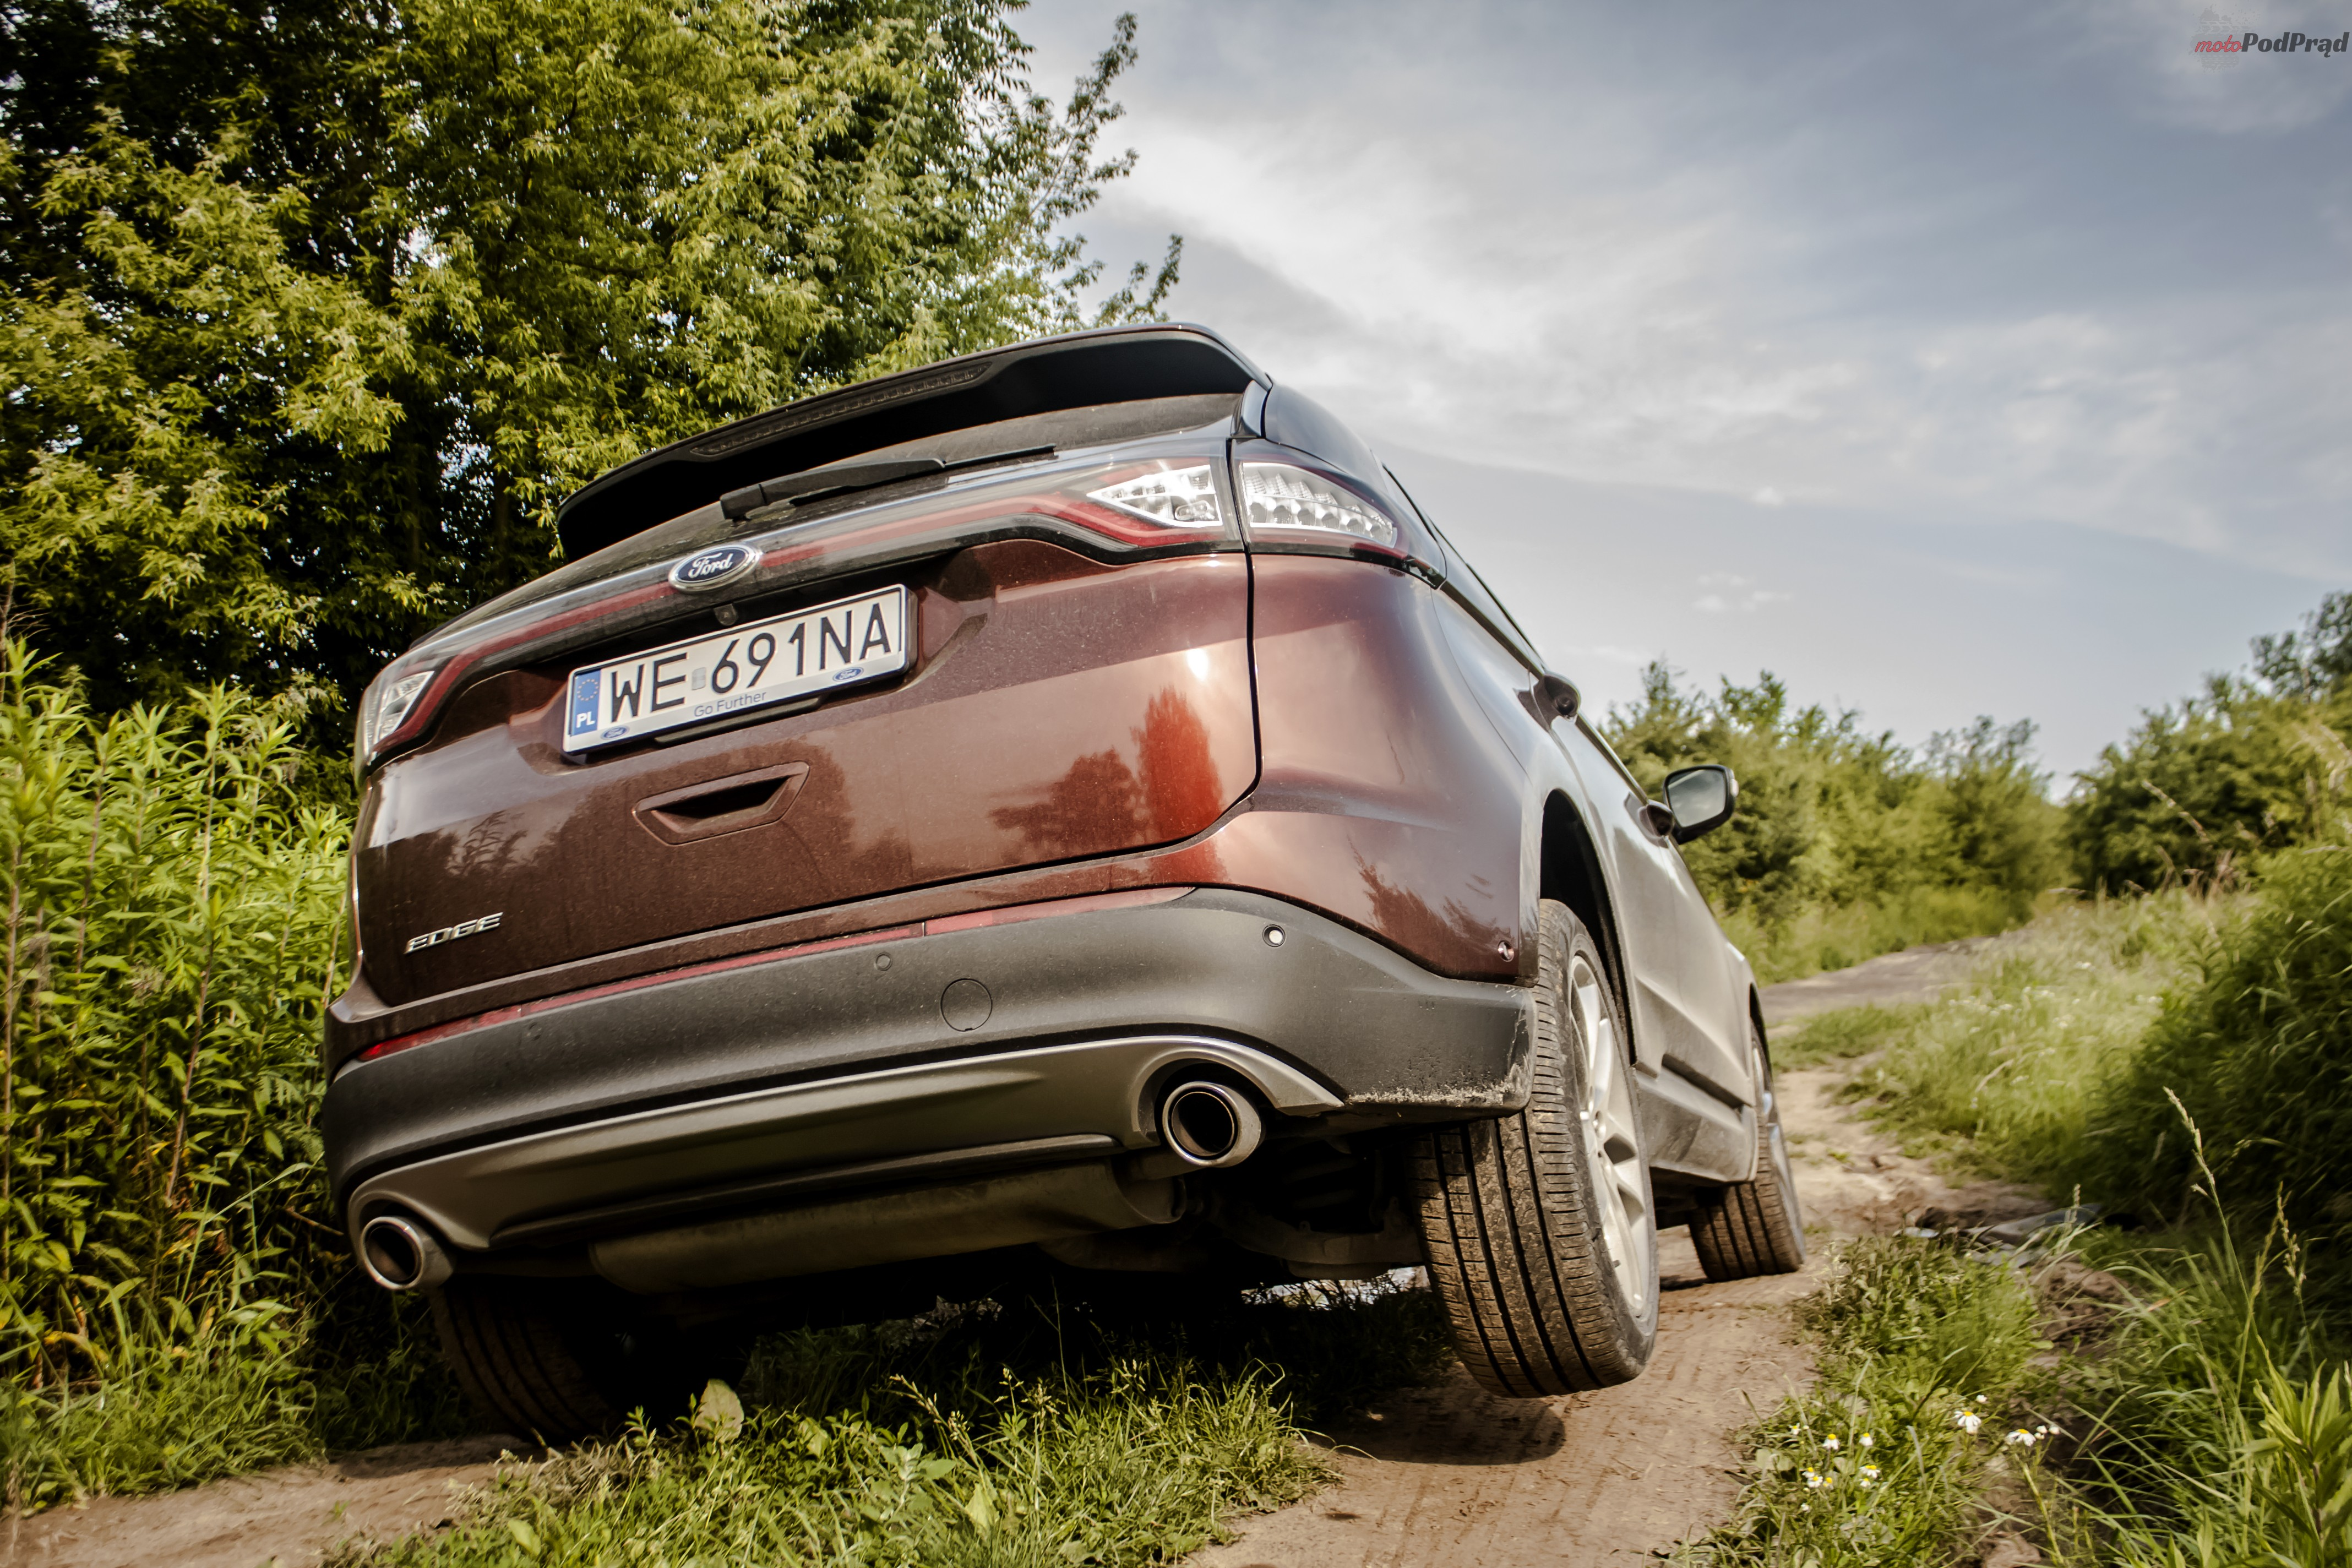 Ford Edge 16 Test: Ford Edge 2.0 TDCi   jazda na krawędzi